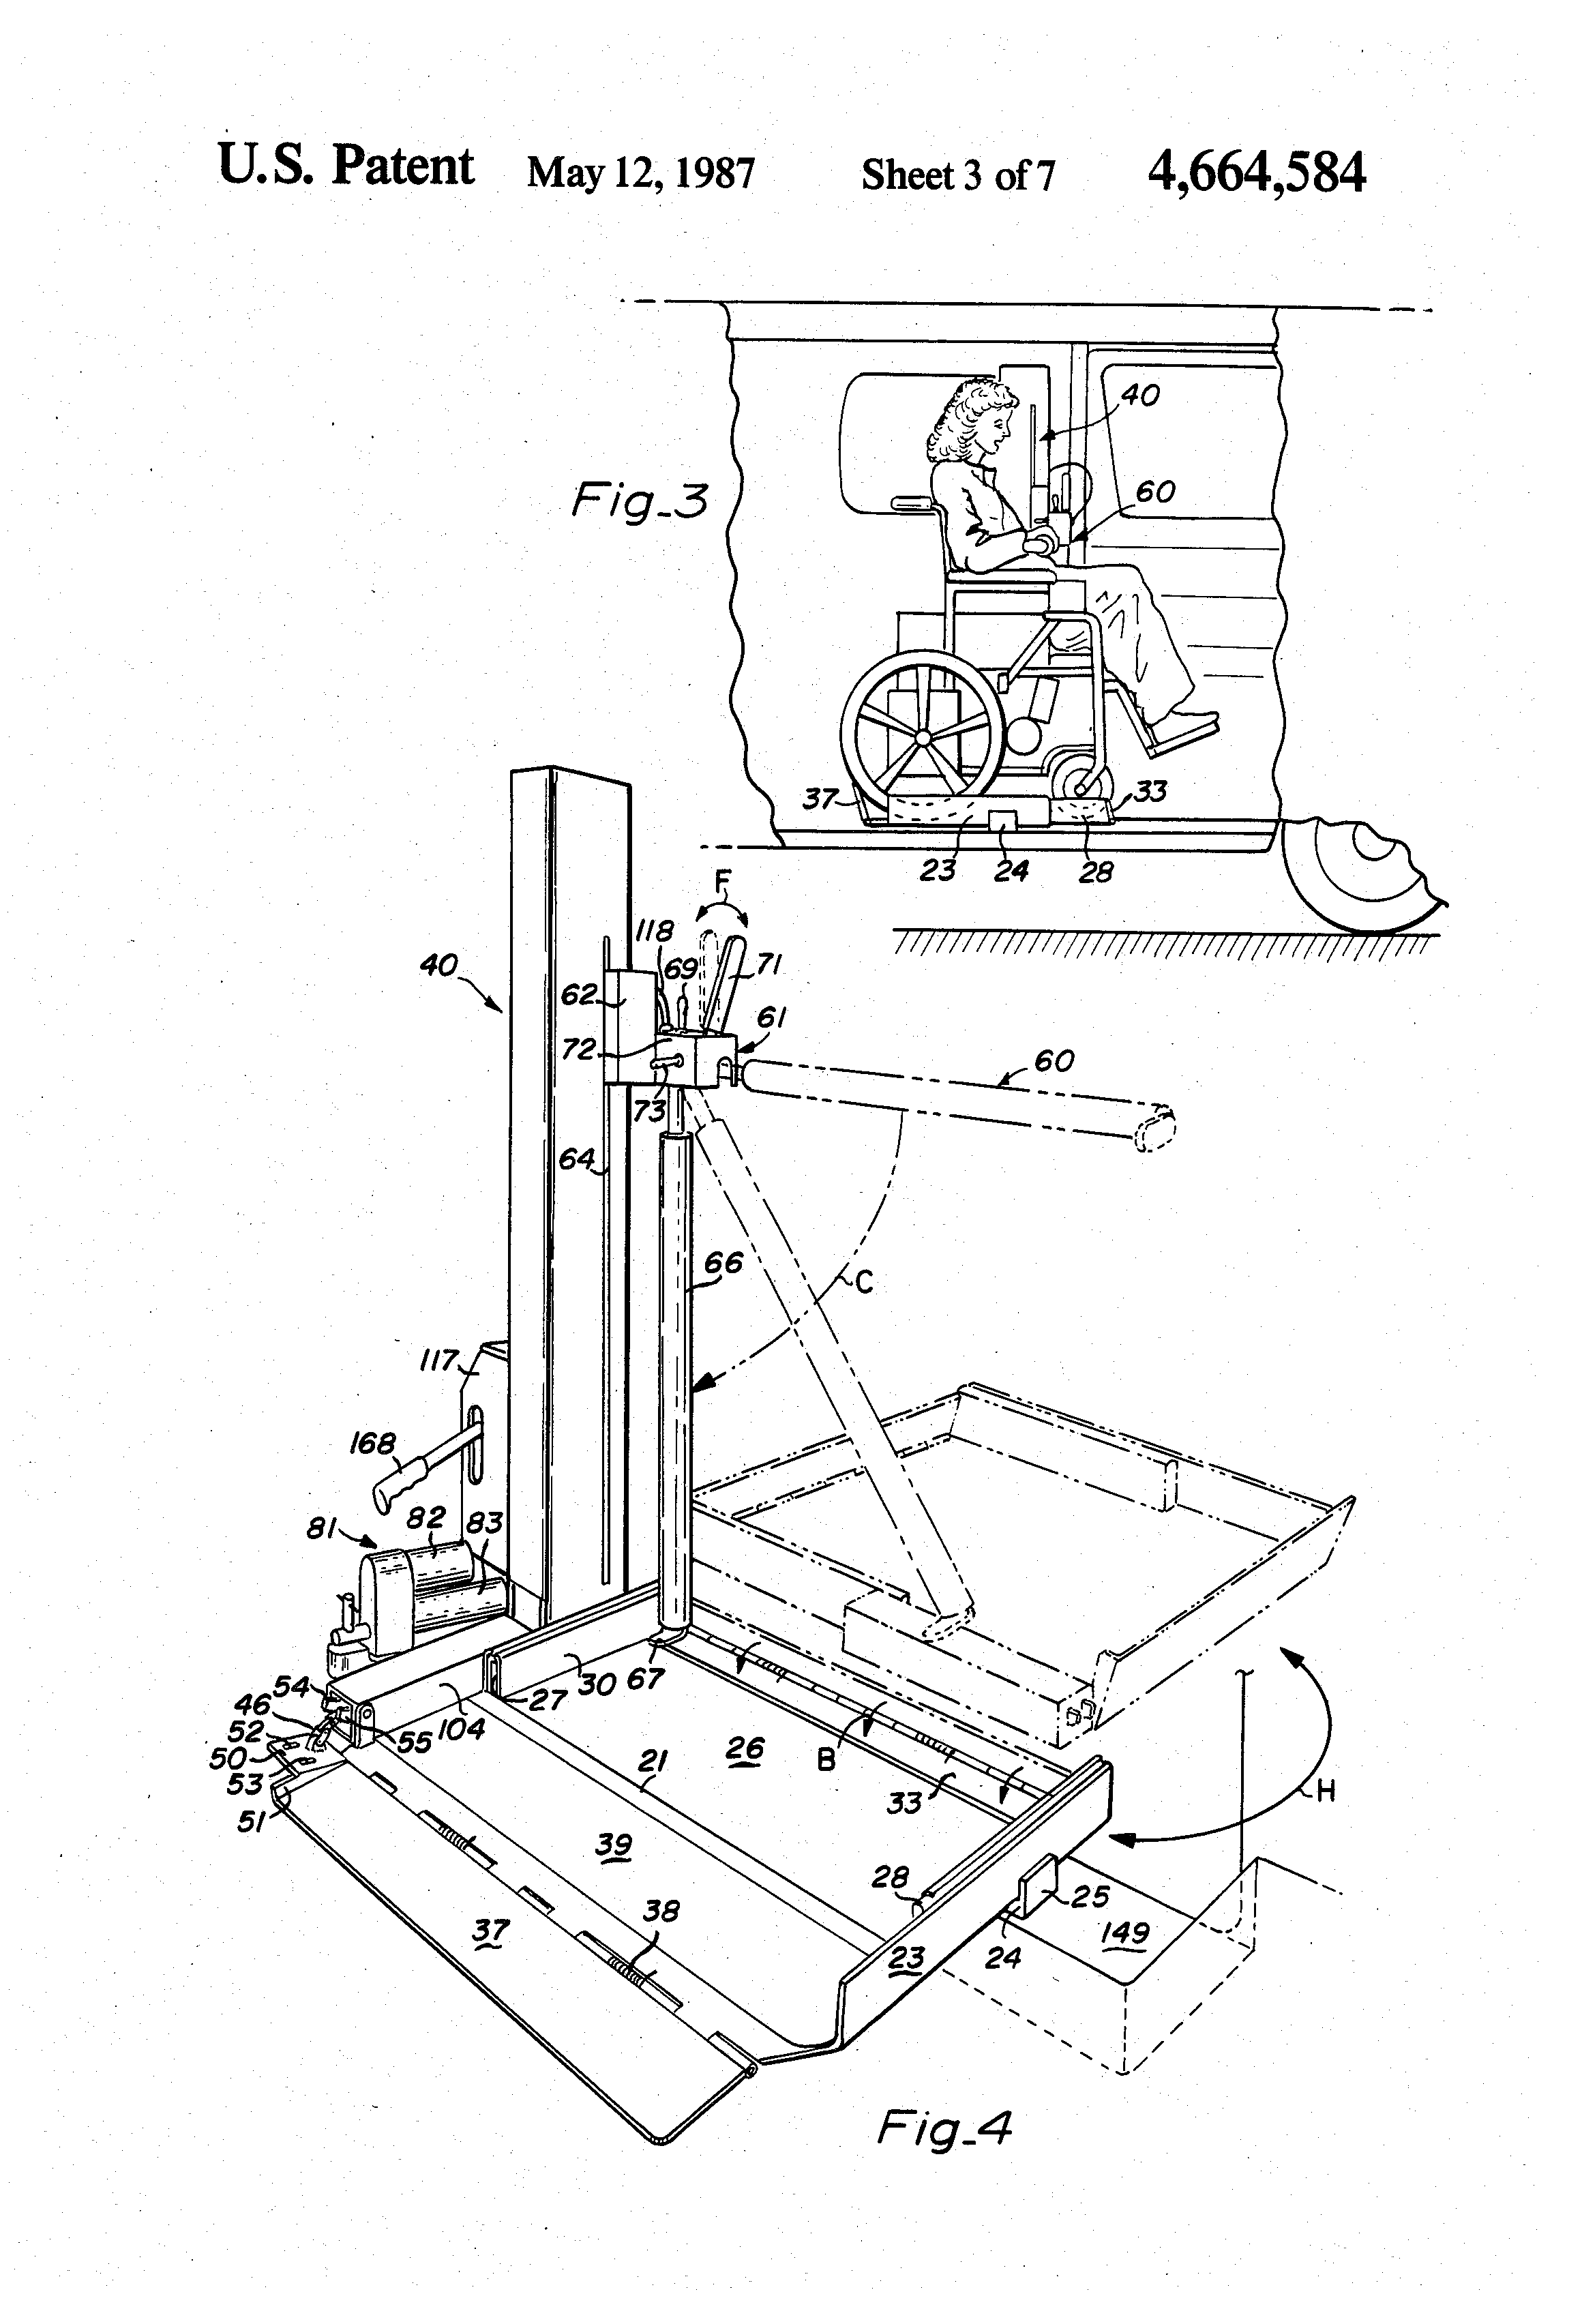 ricon lift wiring diagram 8n 12 volt conversion patent us4664584 rotary wheelchair google patents